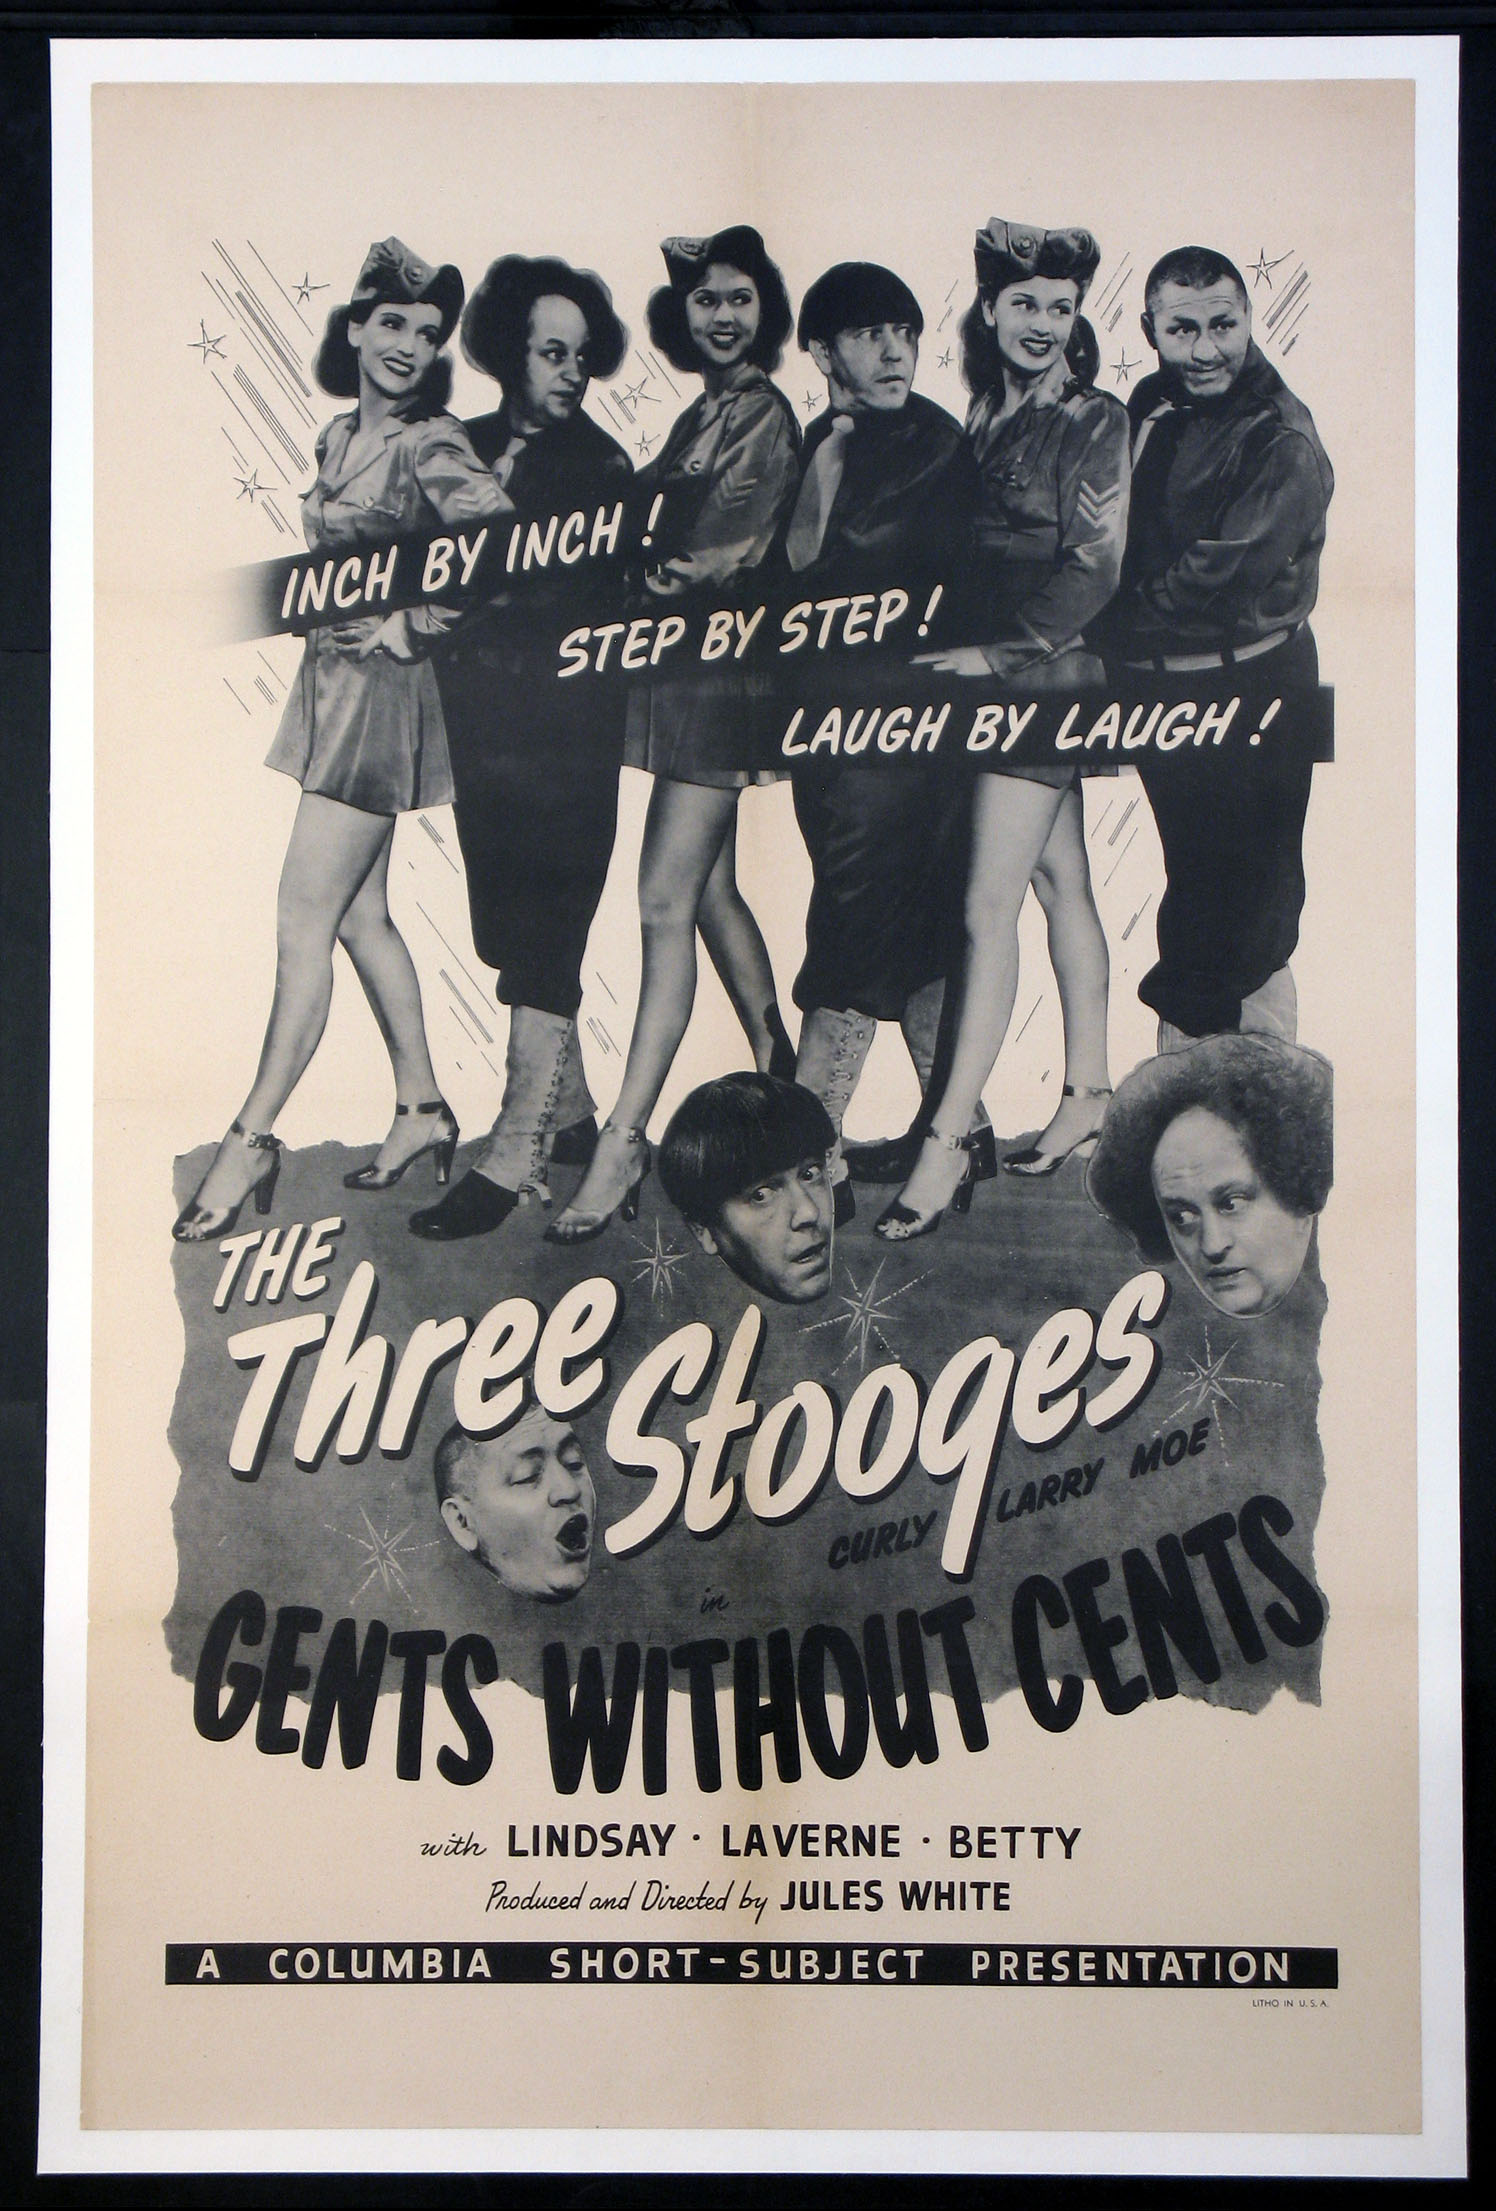 GENTS WITHOUT CENTS @ FilmPosters.com